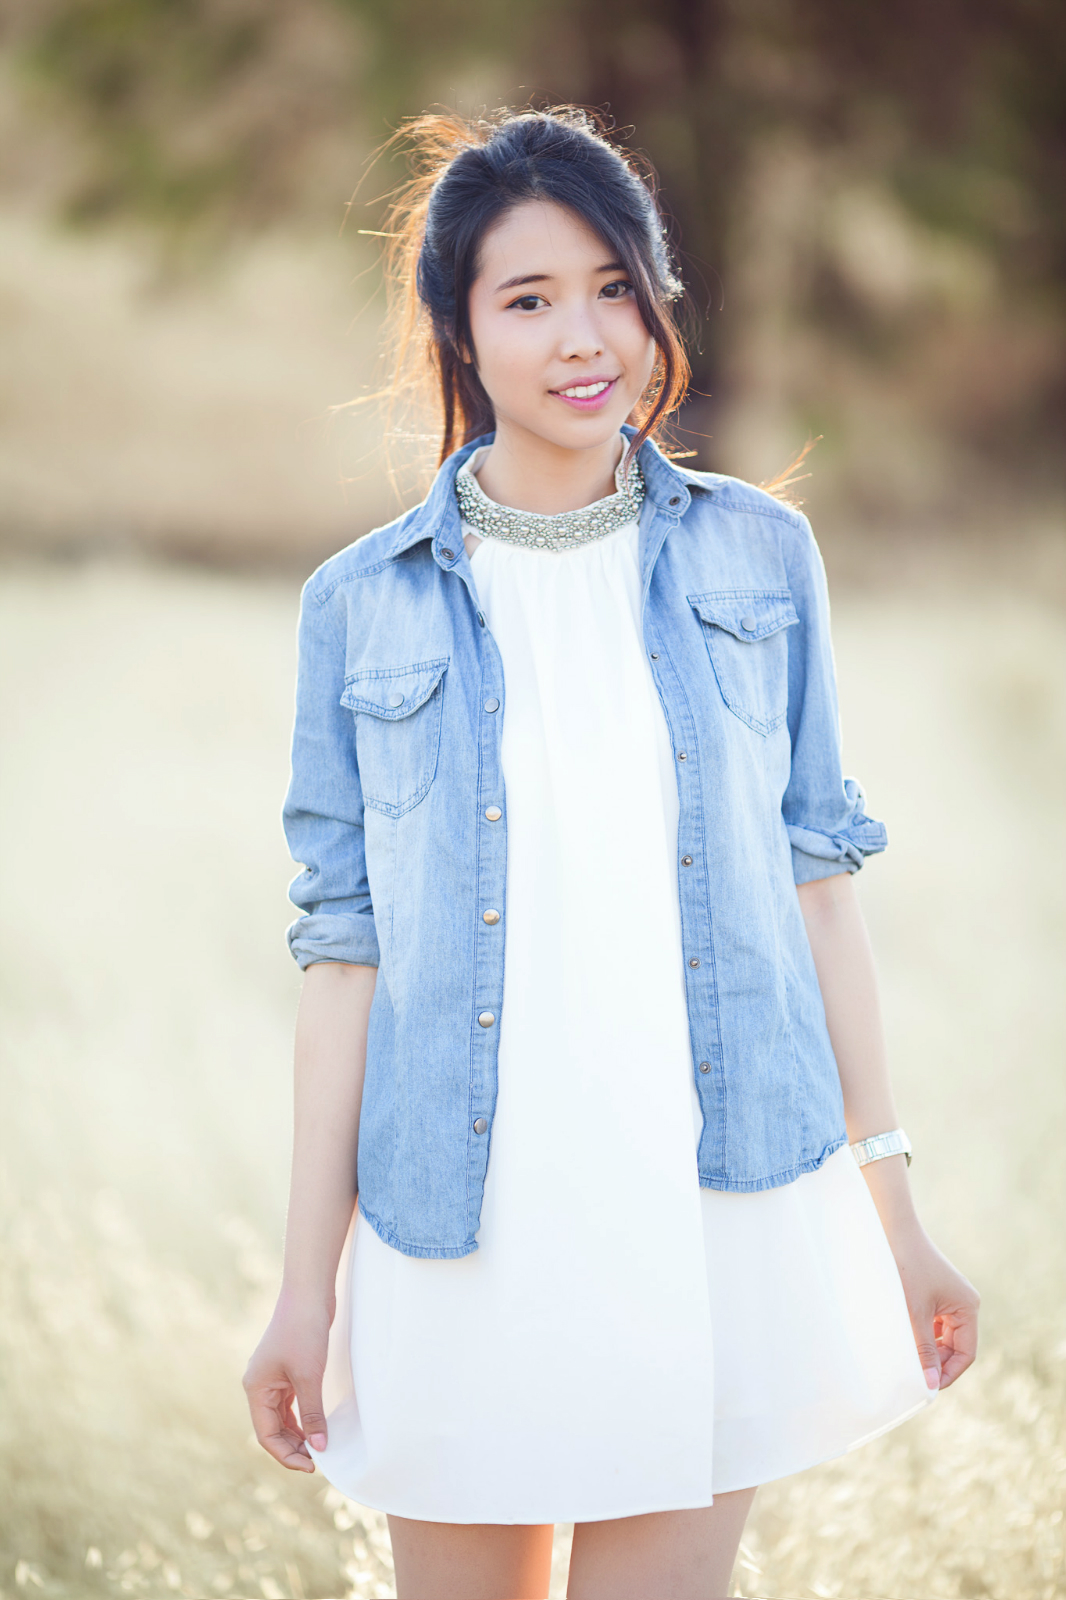 Ally Gong Tobi Photoshoot White Chiffon Dress Blue Denim Shirt Asian